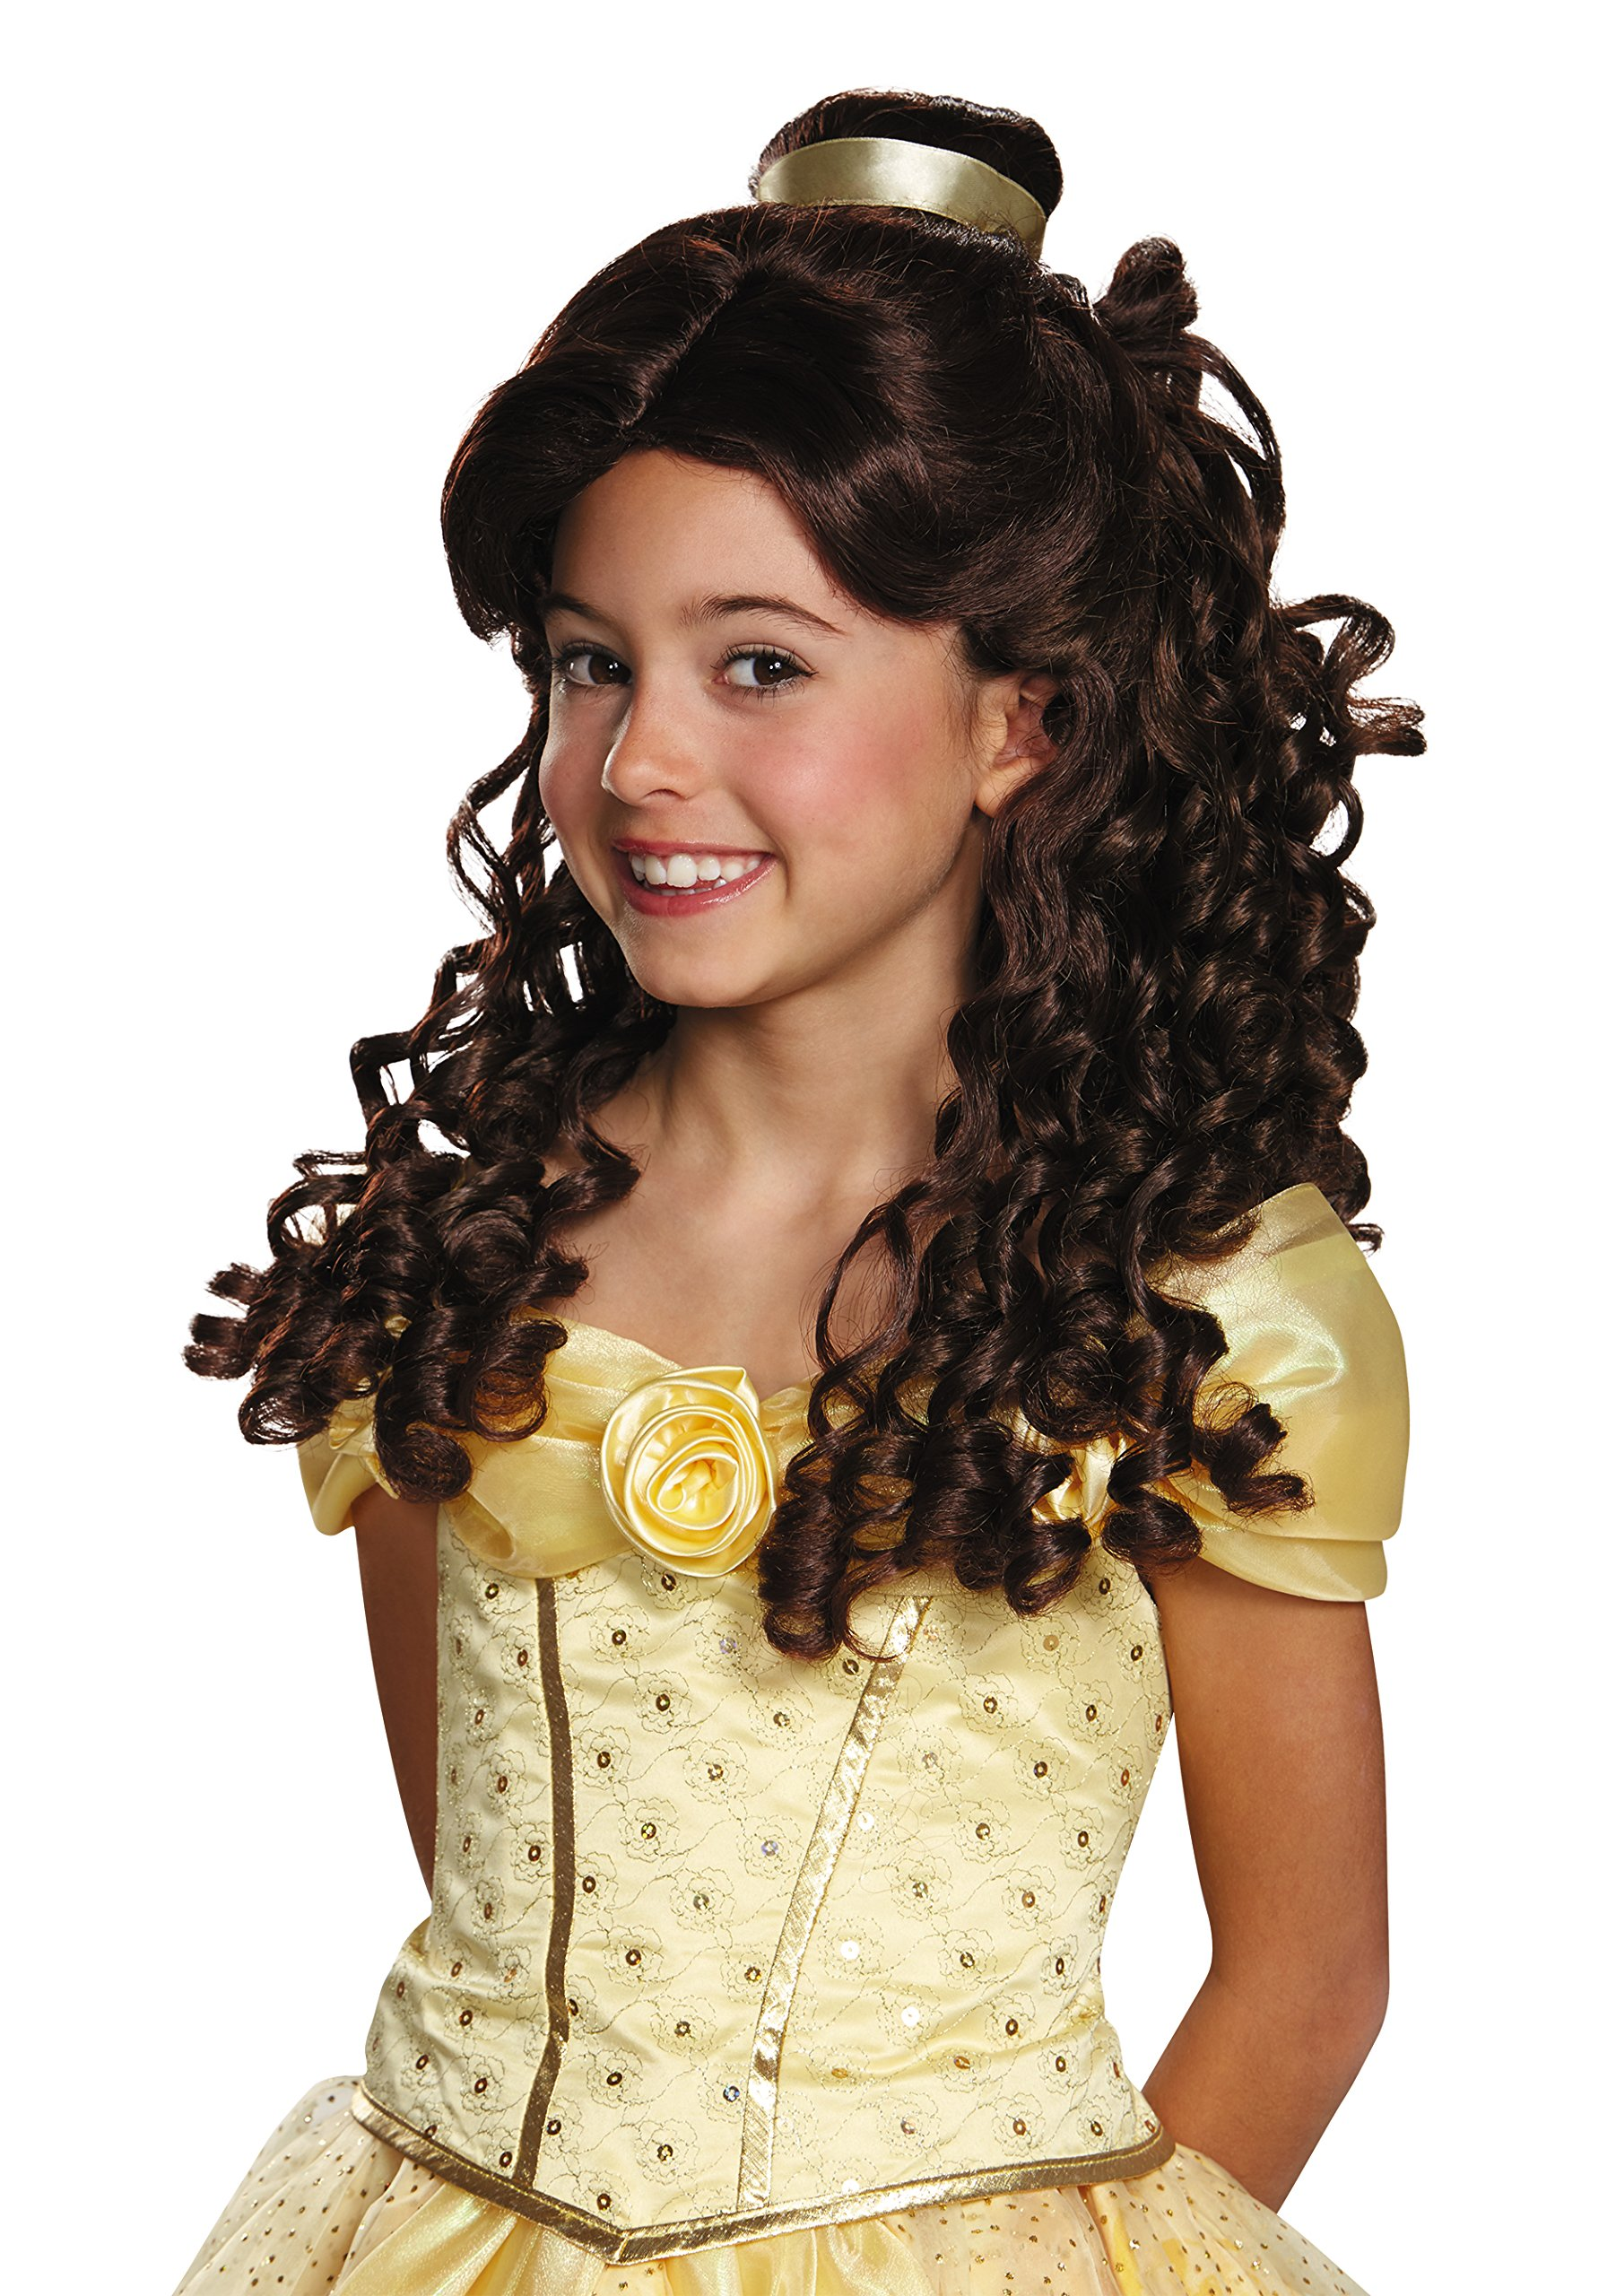 Belle Ultra Prestige Child Disney Princess Beauty & The Beast Wig, One Size Child